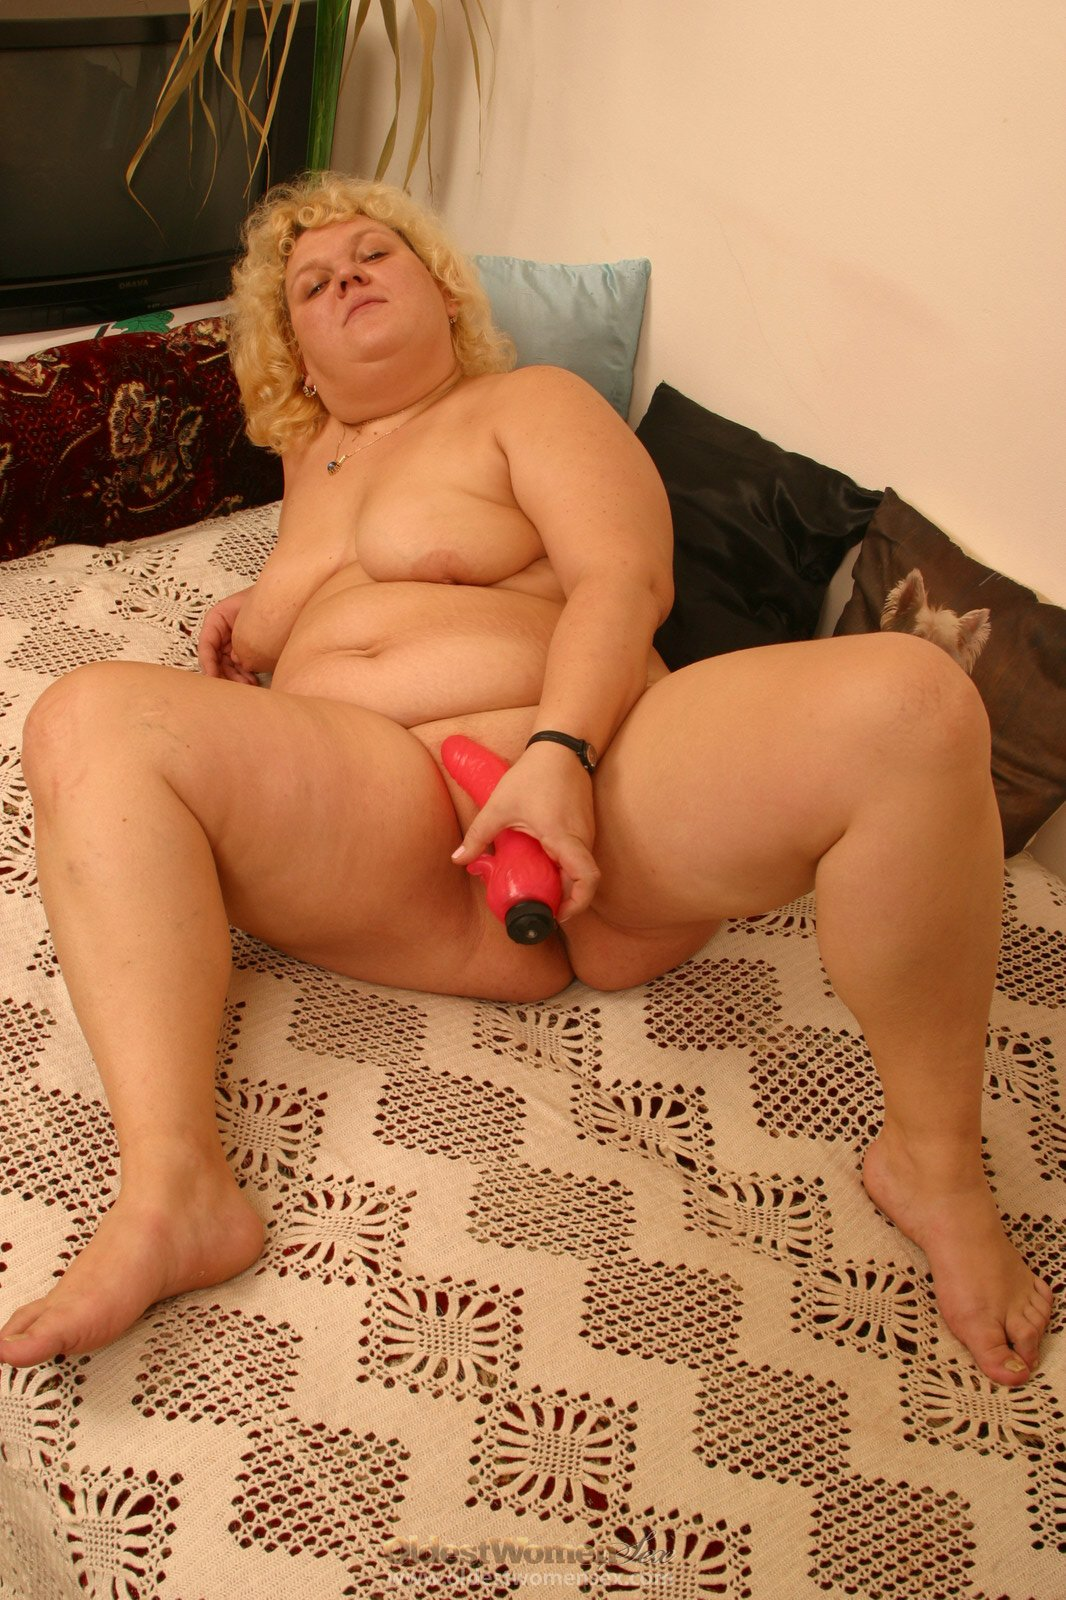 Kate upburn nude and screwing hard